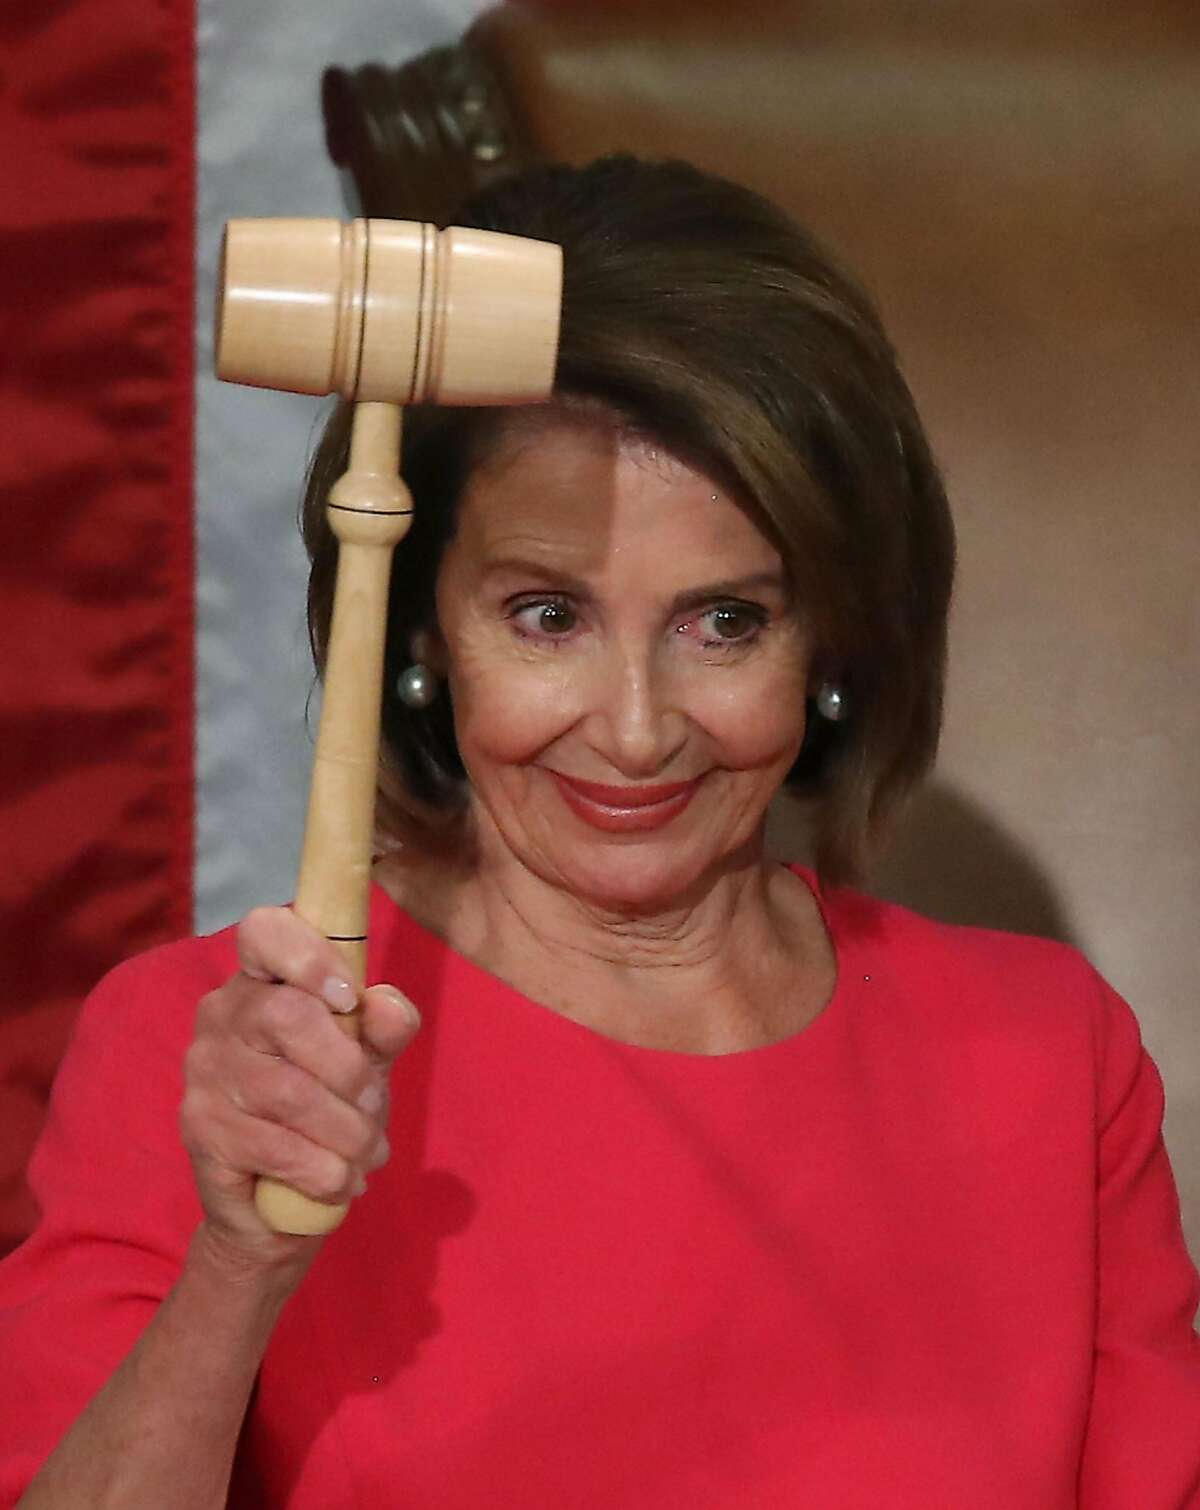 WASHINGTON, DC - JANUARY 03: Speaker of the House Rep. Nancy Pelosi (D-CA) holds the gavel during the first session of the 116th Congress at the U.S. Capitol January 3, 2019 in Washington, DC. Under the cloud of a partial federal government shutdown, Pelosi will reclaim her former title as Speaker of the House and her fellow Democrats will take control of the House of Representatives for the second time in eight years. (Photo by Mark Wilson/Getty Images)